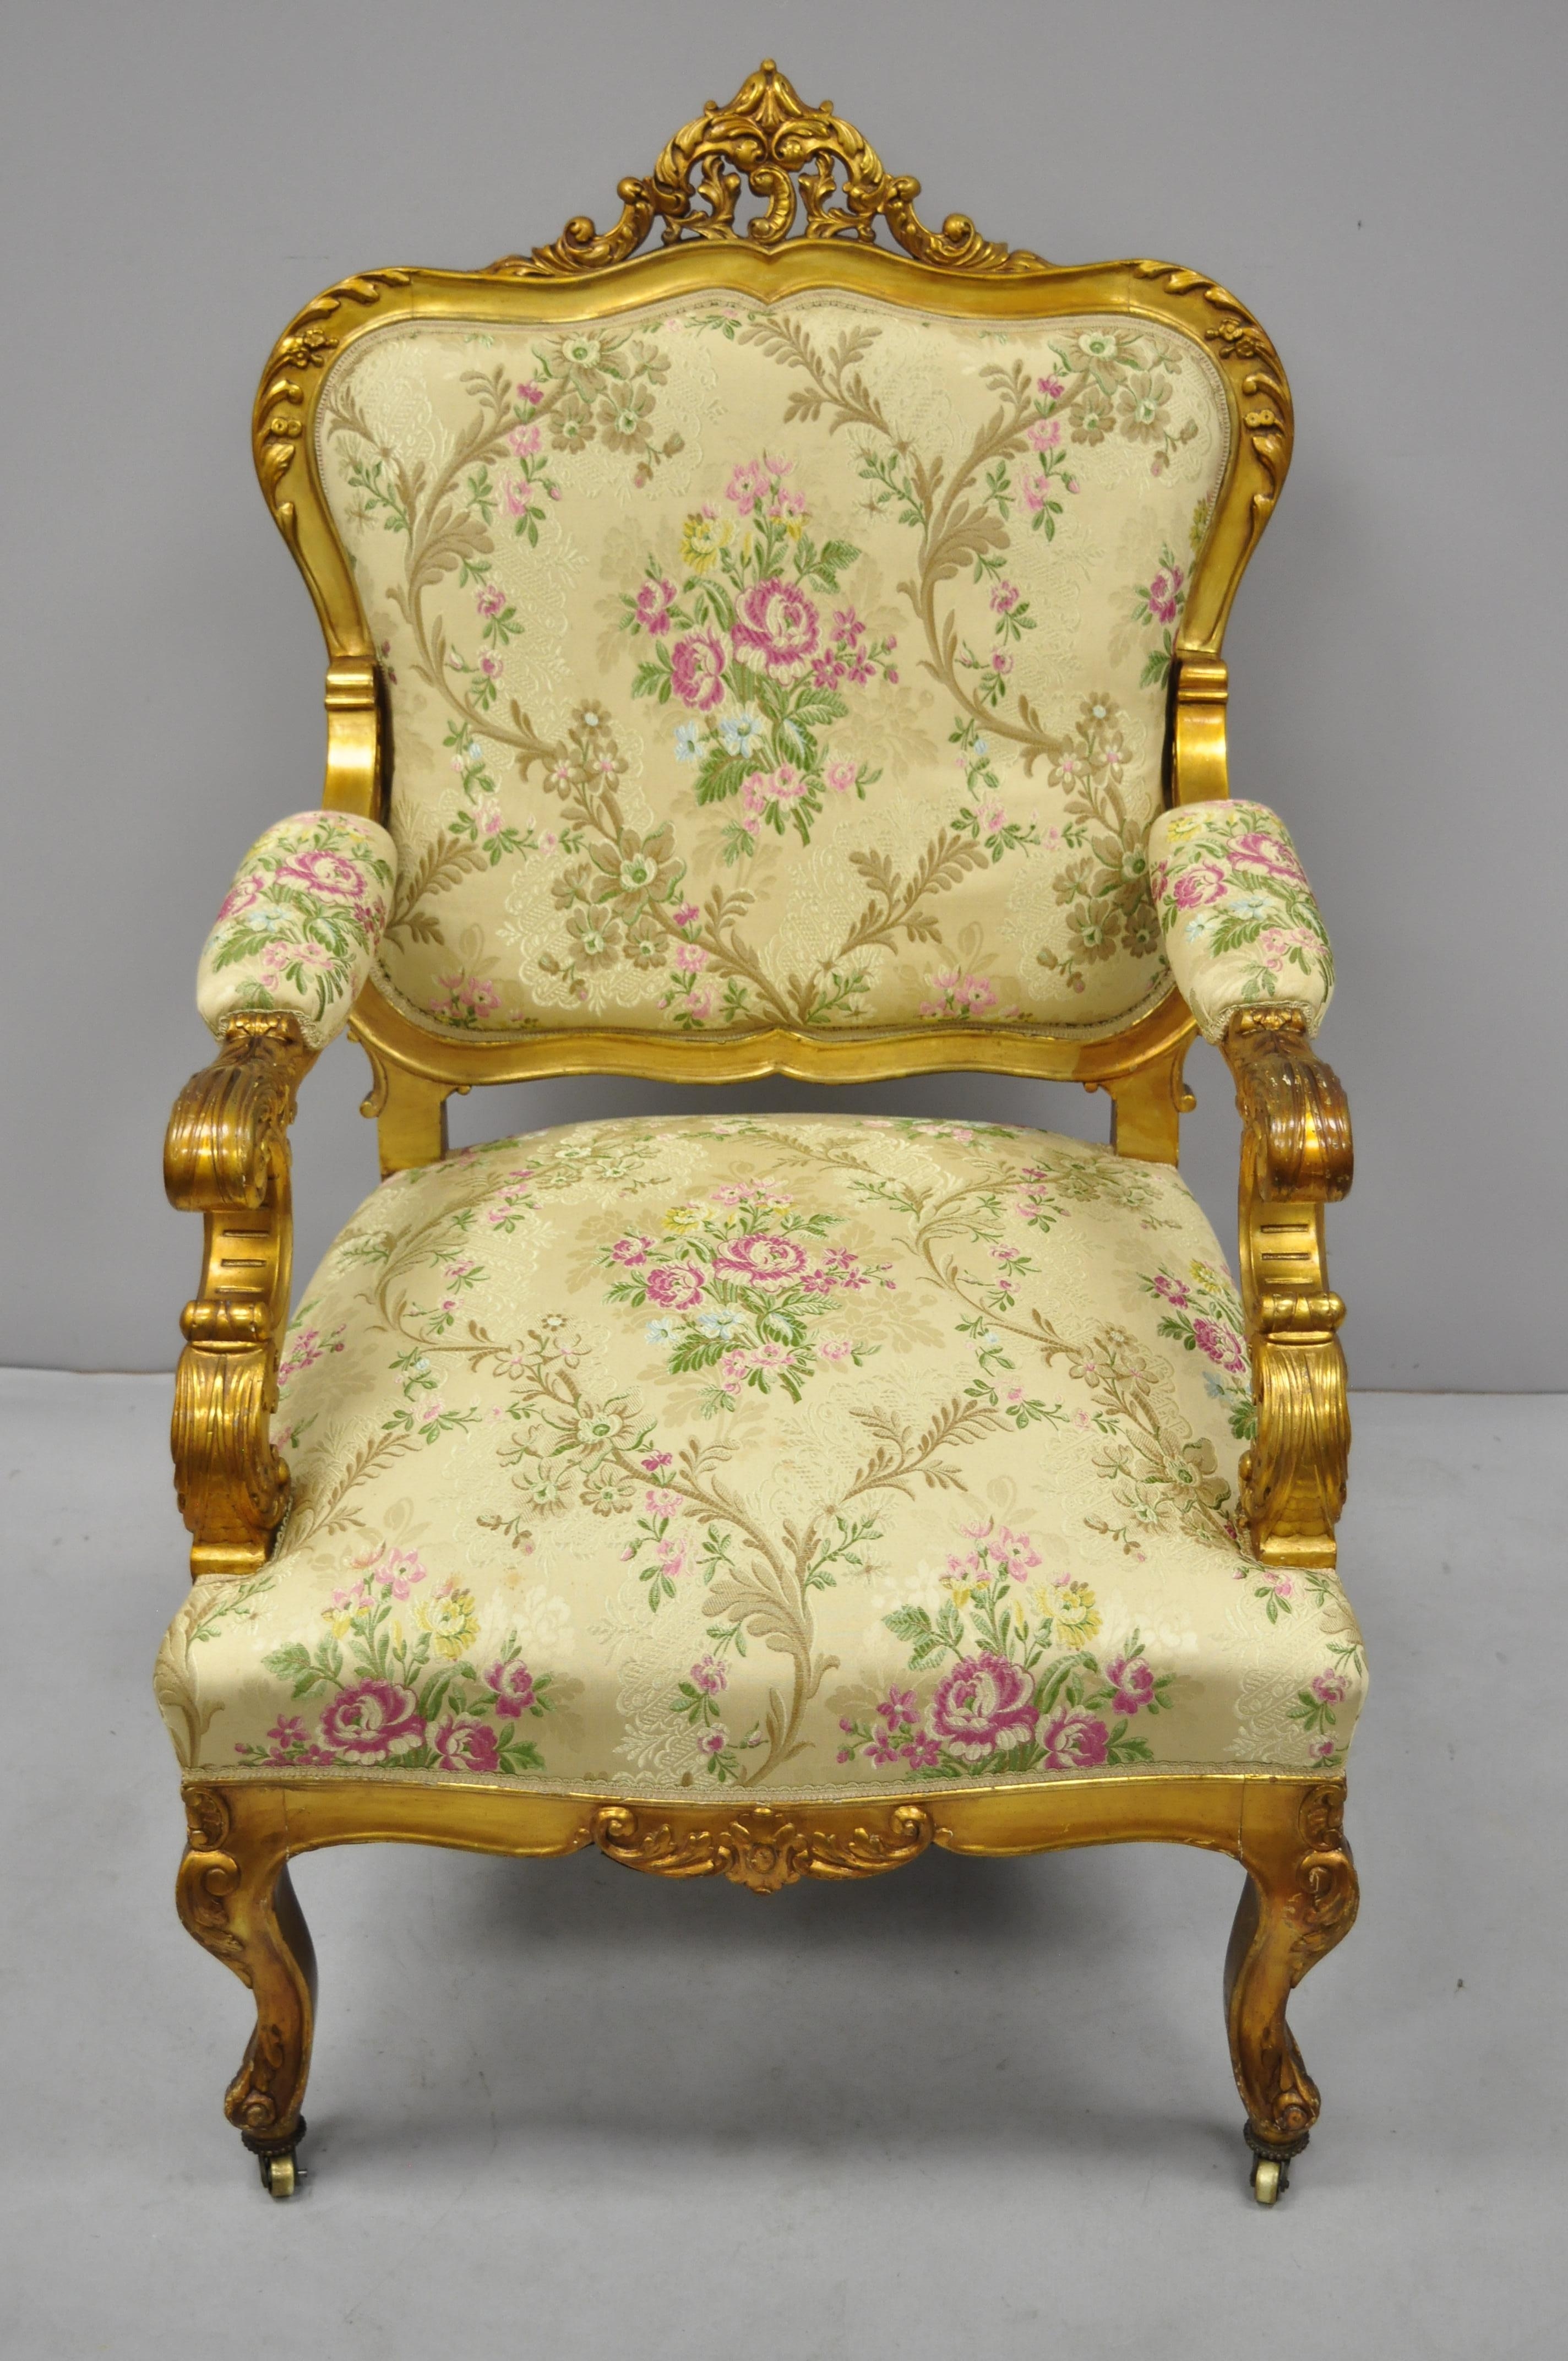 1920s French Louis Xv Rococo Style Gold Gilt Parlor Chair Armchair For Sale At 1stdibs